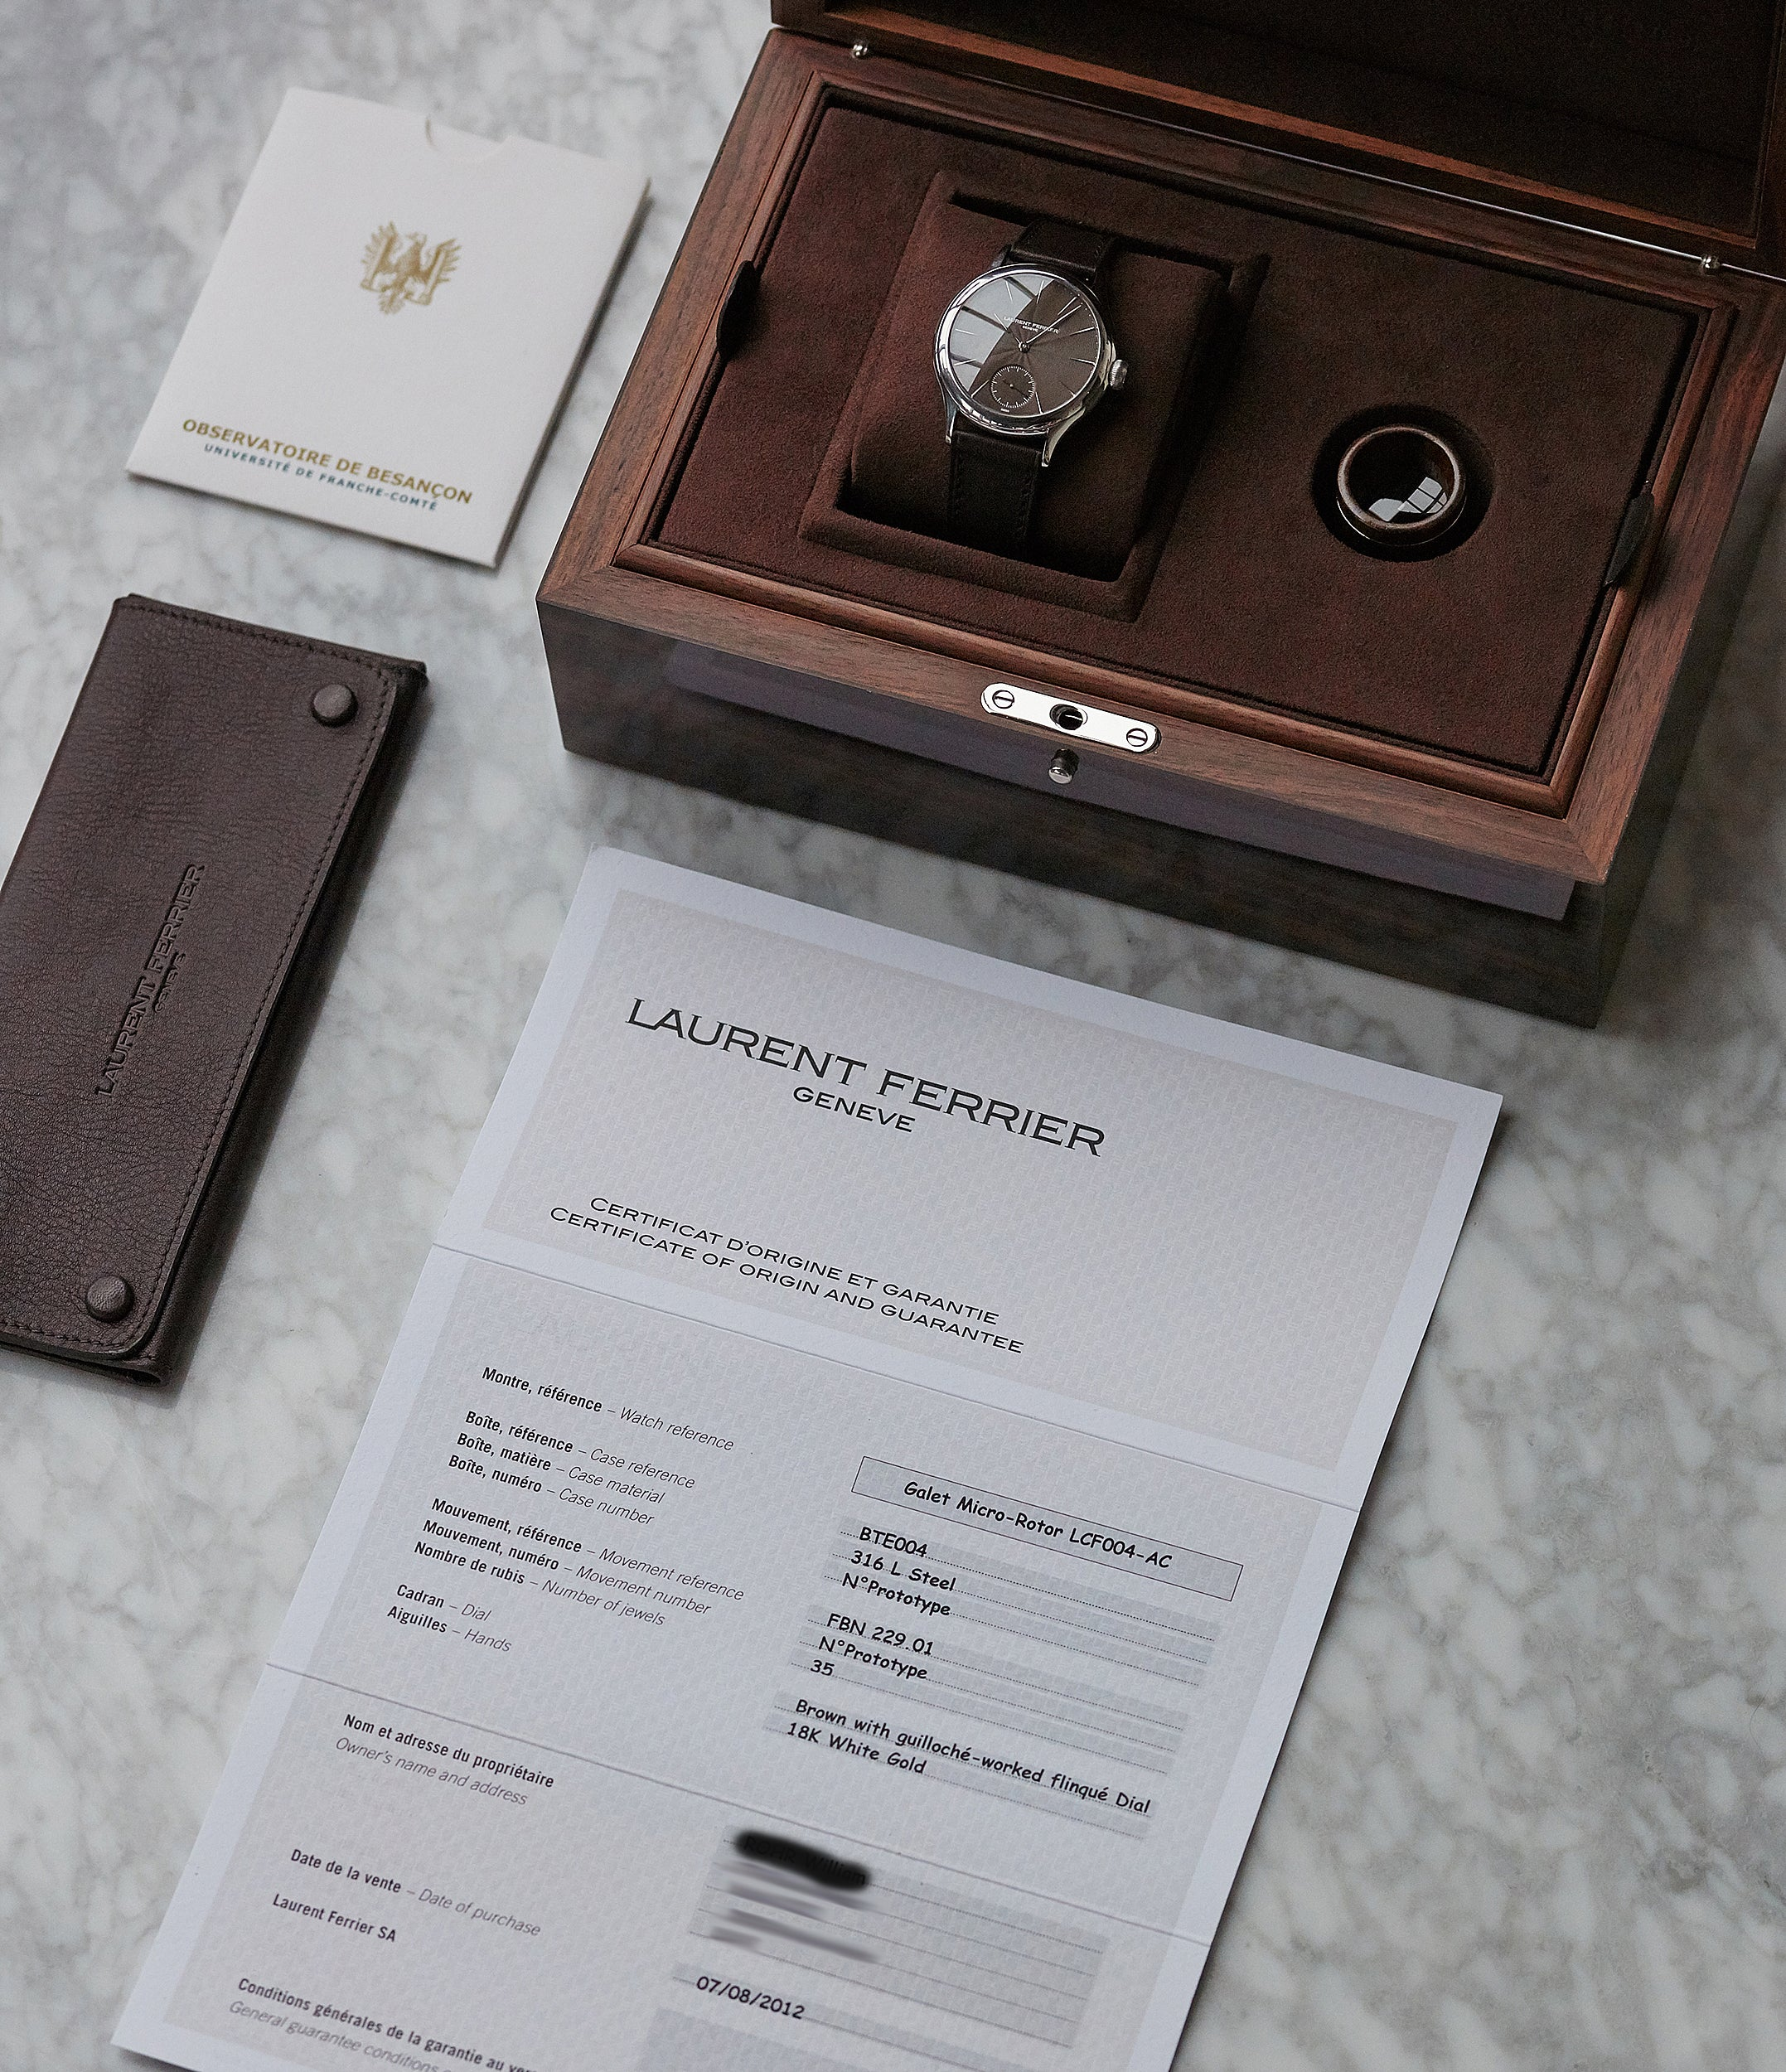 only Watch Laurent Ferrier Prototype Galet Micro-rotor LF 229.01 steel watch brown dial for sale online at A Collected Man London UK approved seller of independent watchmakers